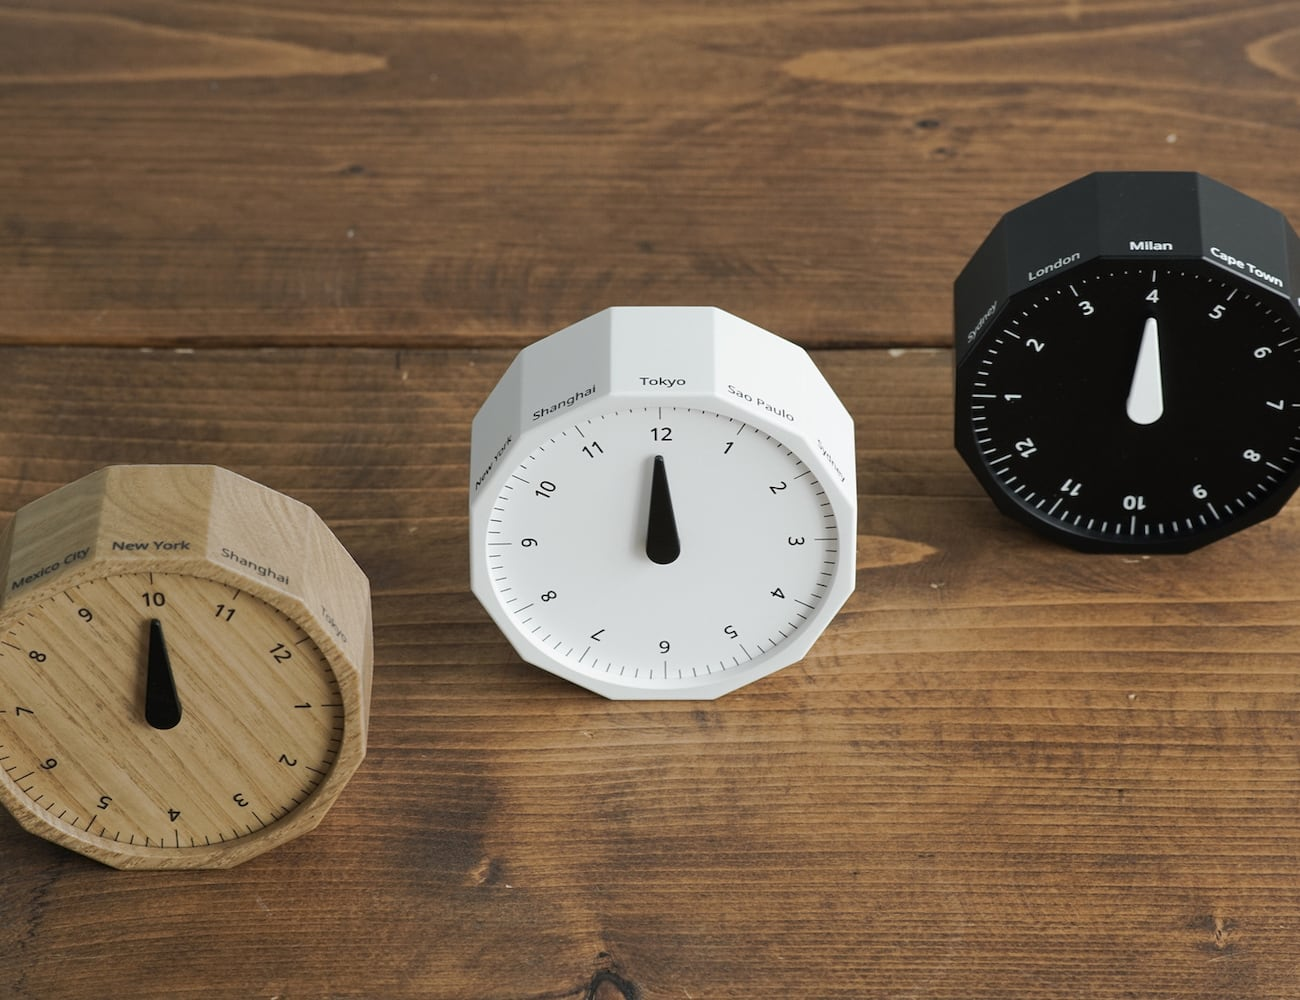 World Clock Miniature 12-Sided Clock turns with the time zones